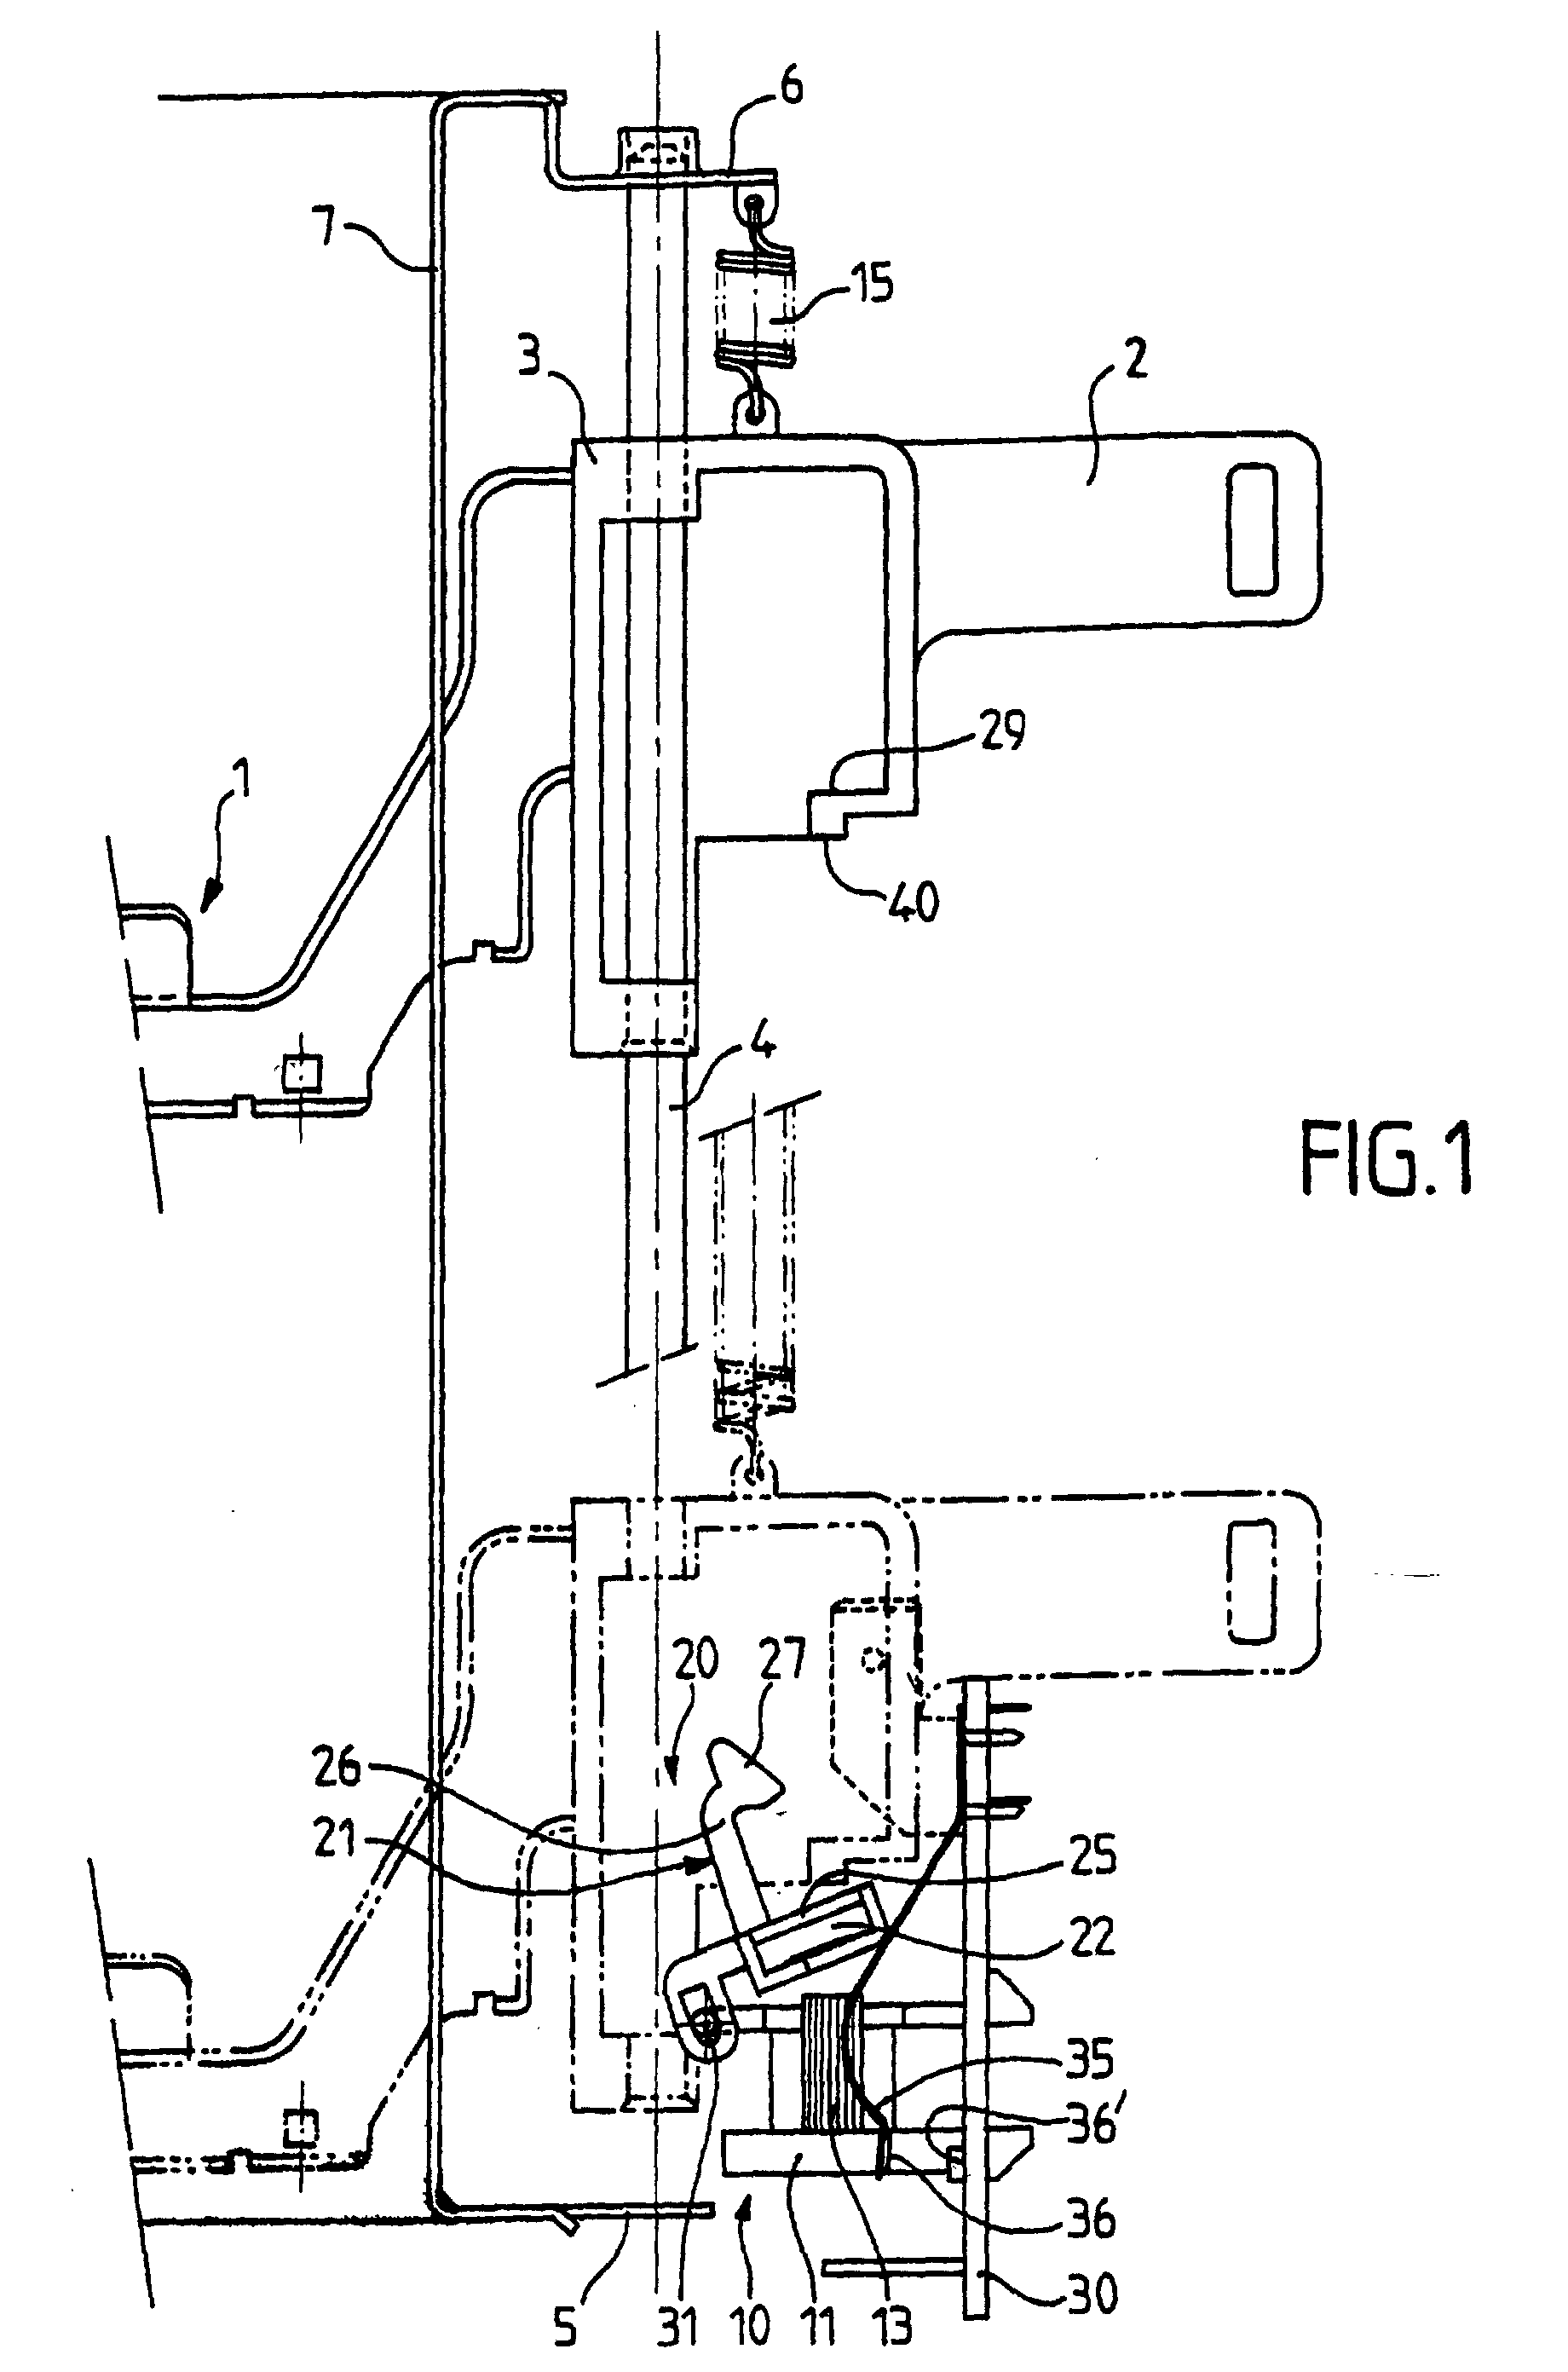 patent ep1135045b1 - electric toaster equipped with electromagnet  switch assembly